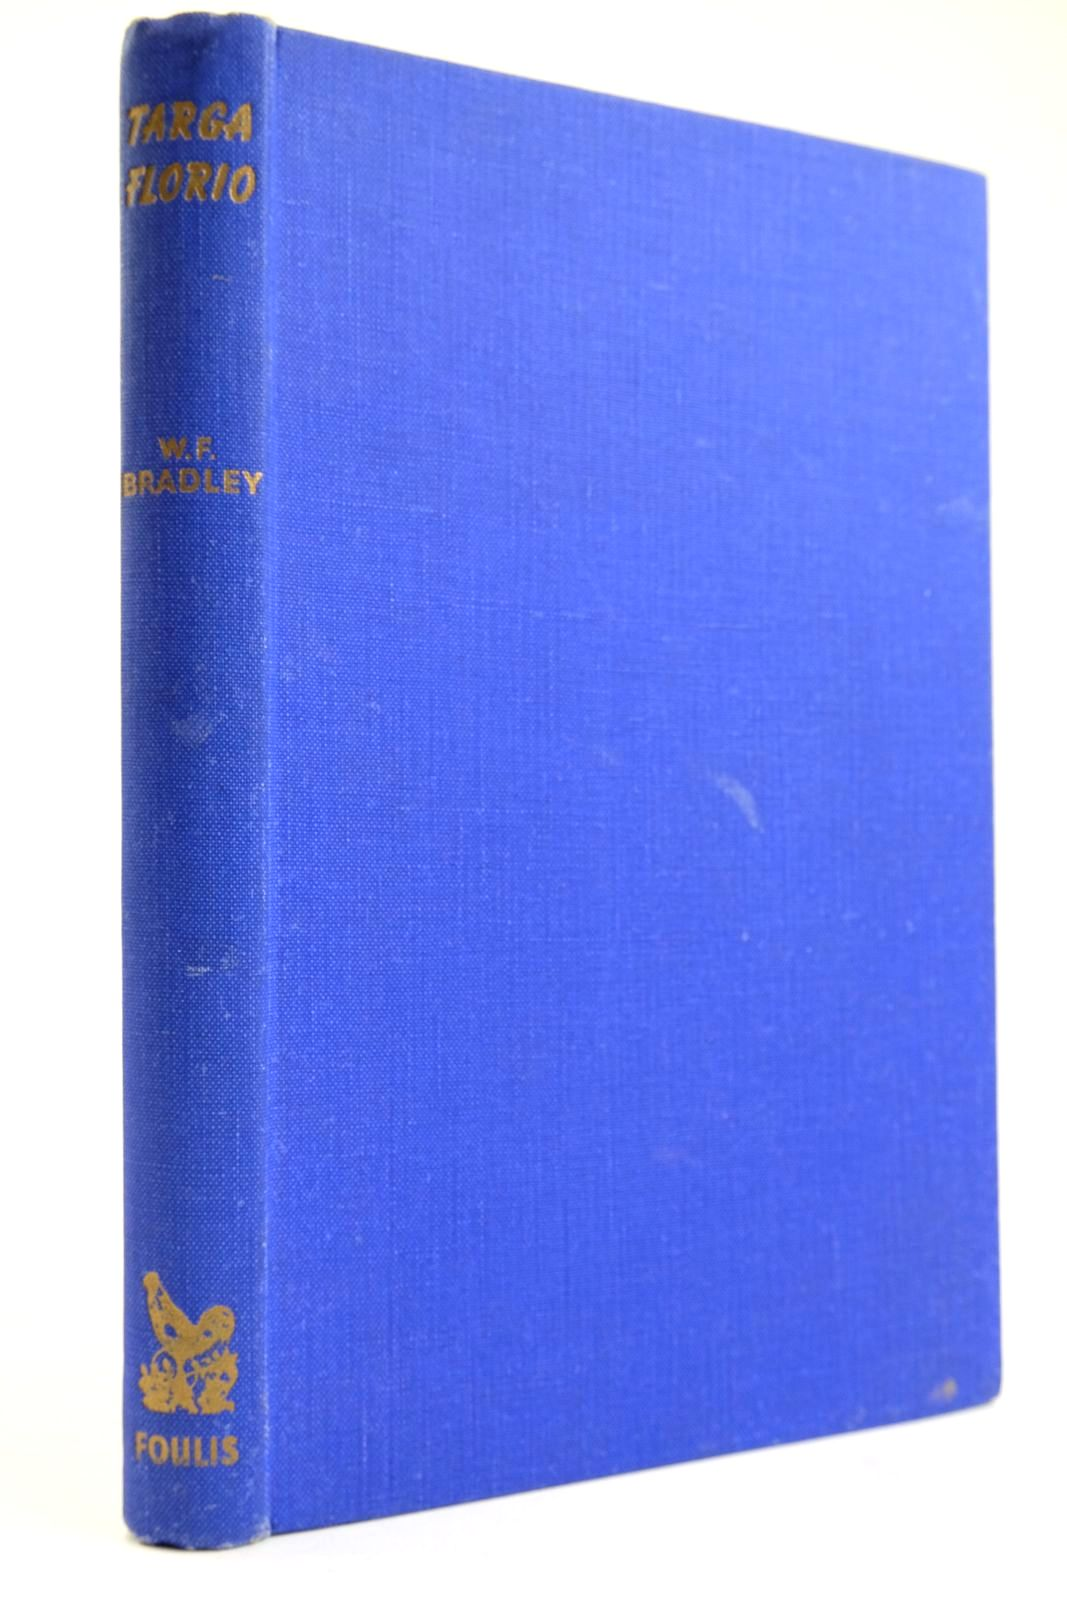 Photo of TARGA FLORIO written by Bradley, W.F. published by G.T. Foulis (STOCK CODE: 2133559)  for sale by Stella & Rose's Books